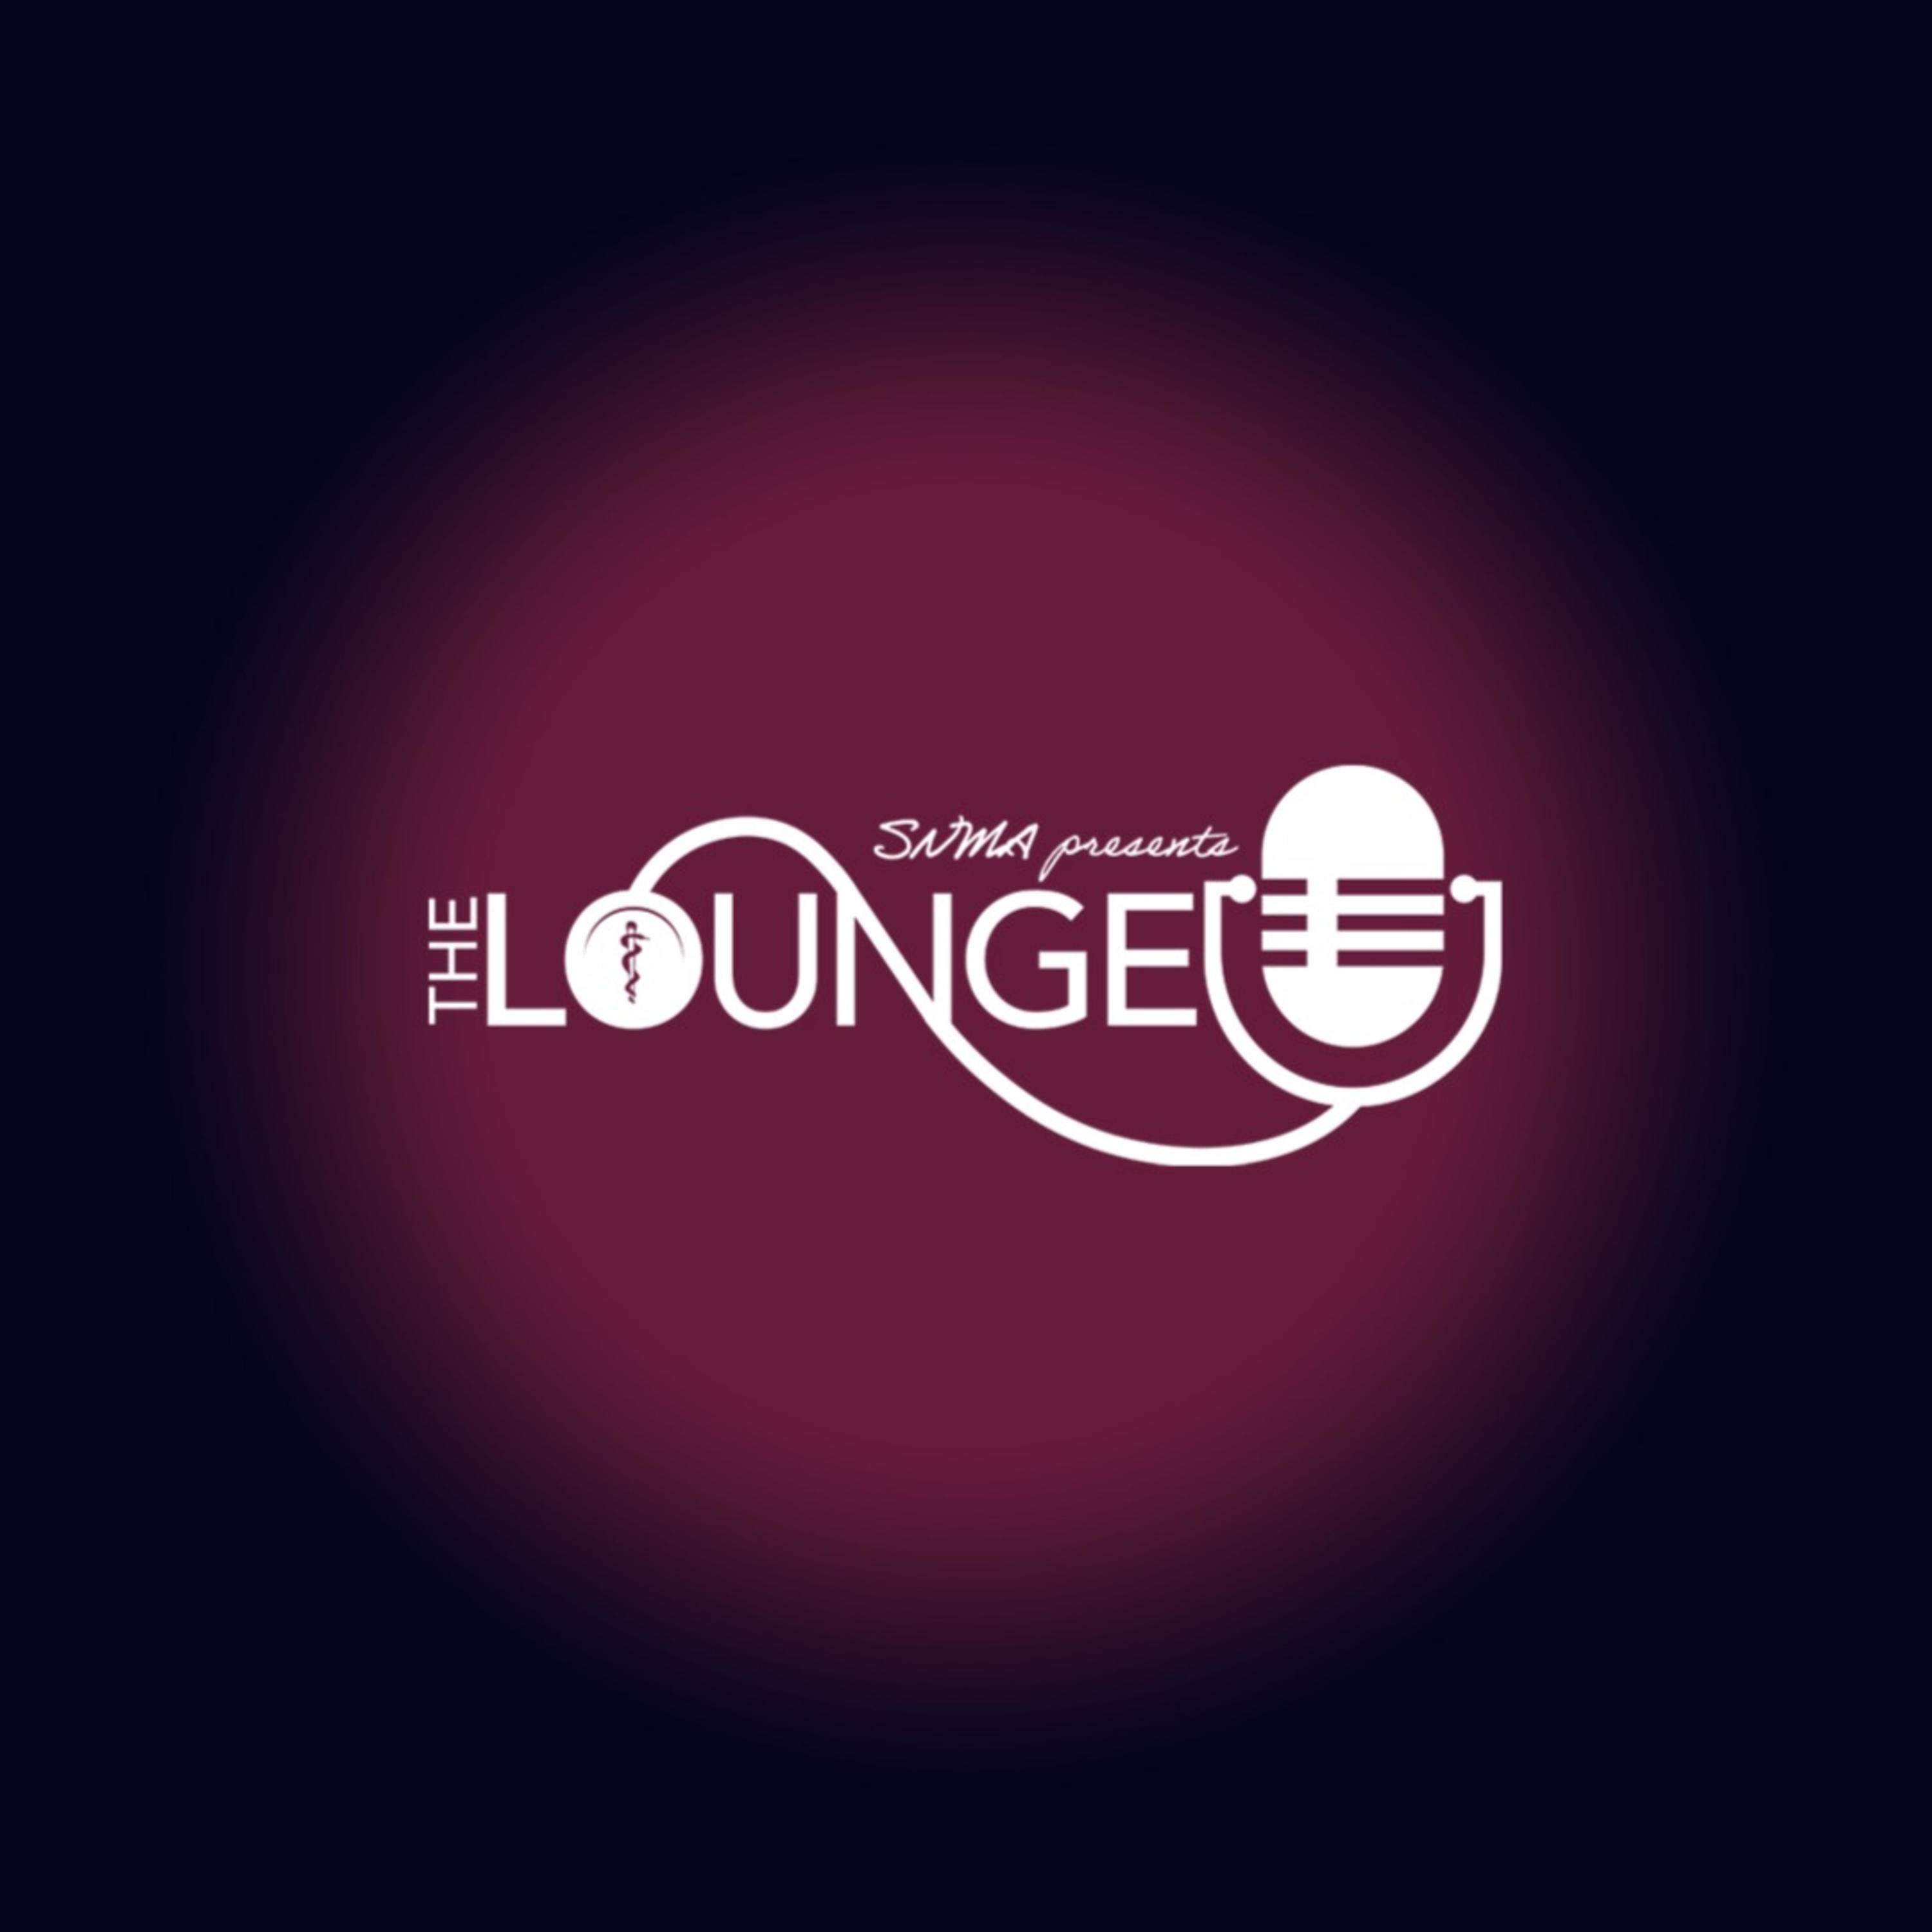 SNMA Presents: The Lounge podcast show image